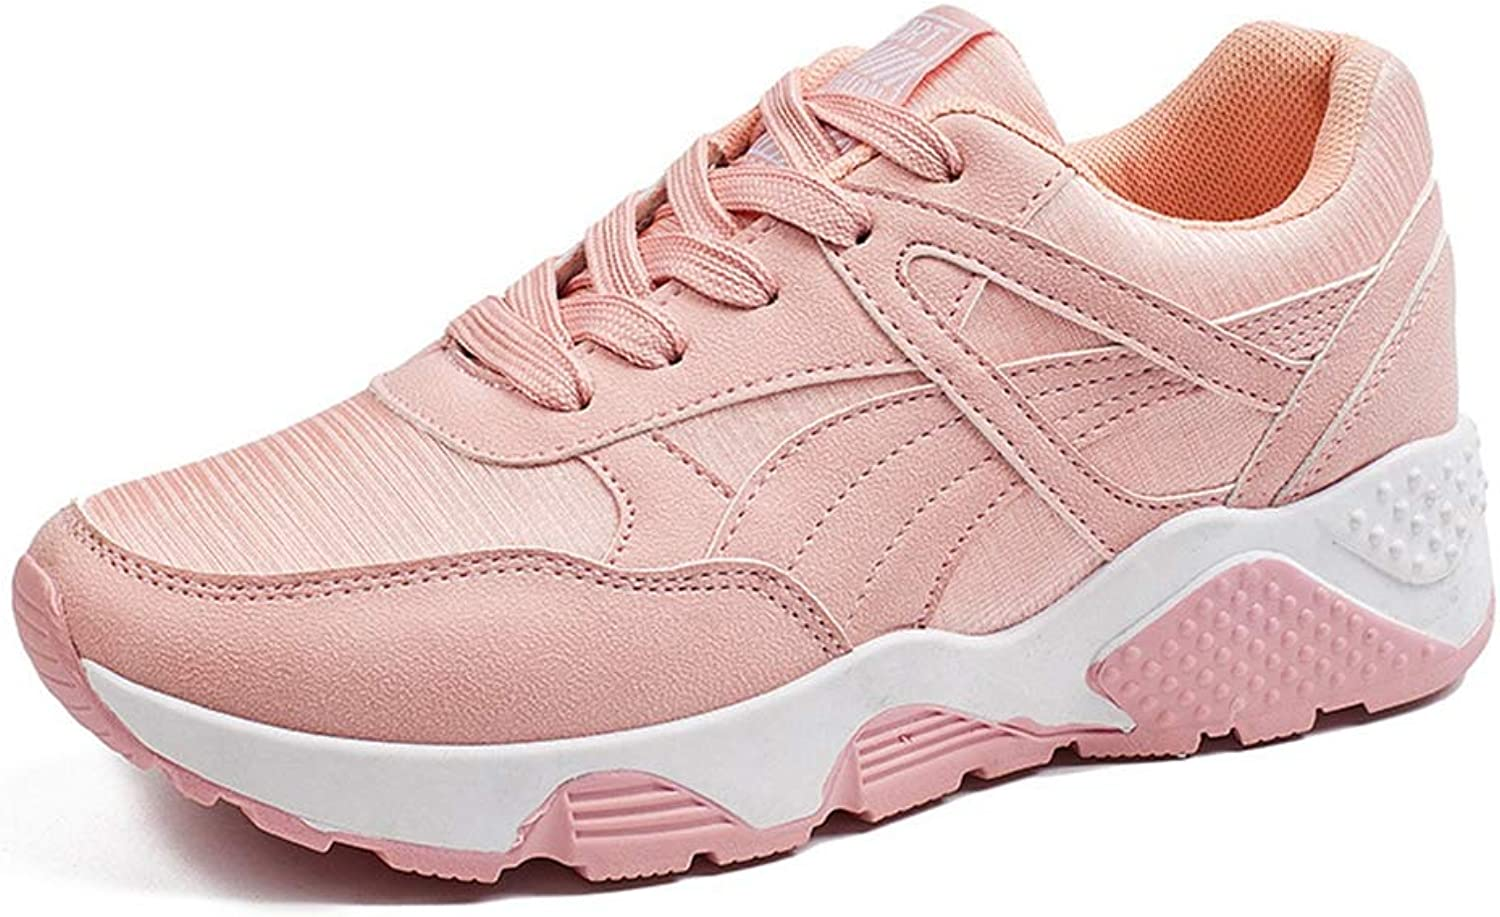 GIY Women's Fashion Sneakers Breathable Mesh Loafers Flats shoes Casual Lace-up Slip On Running shoes